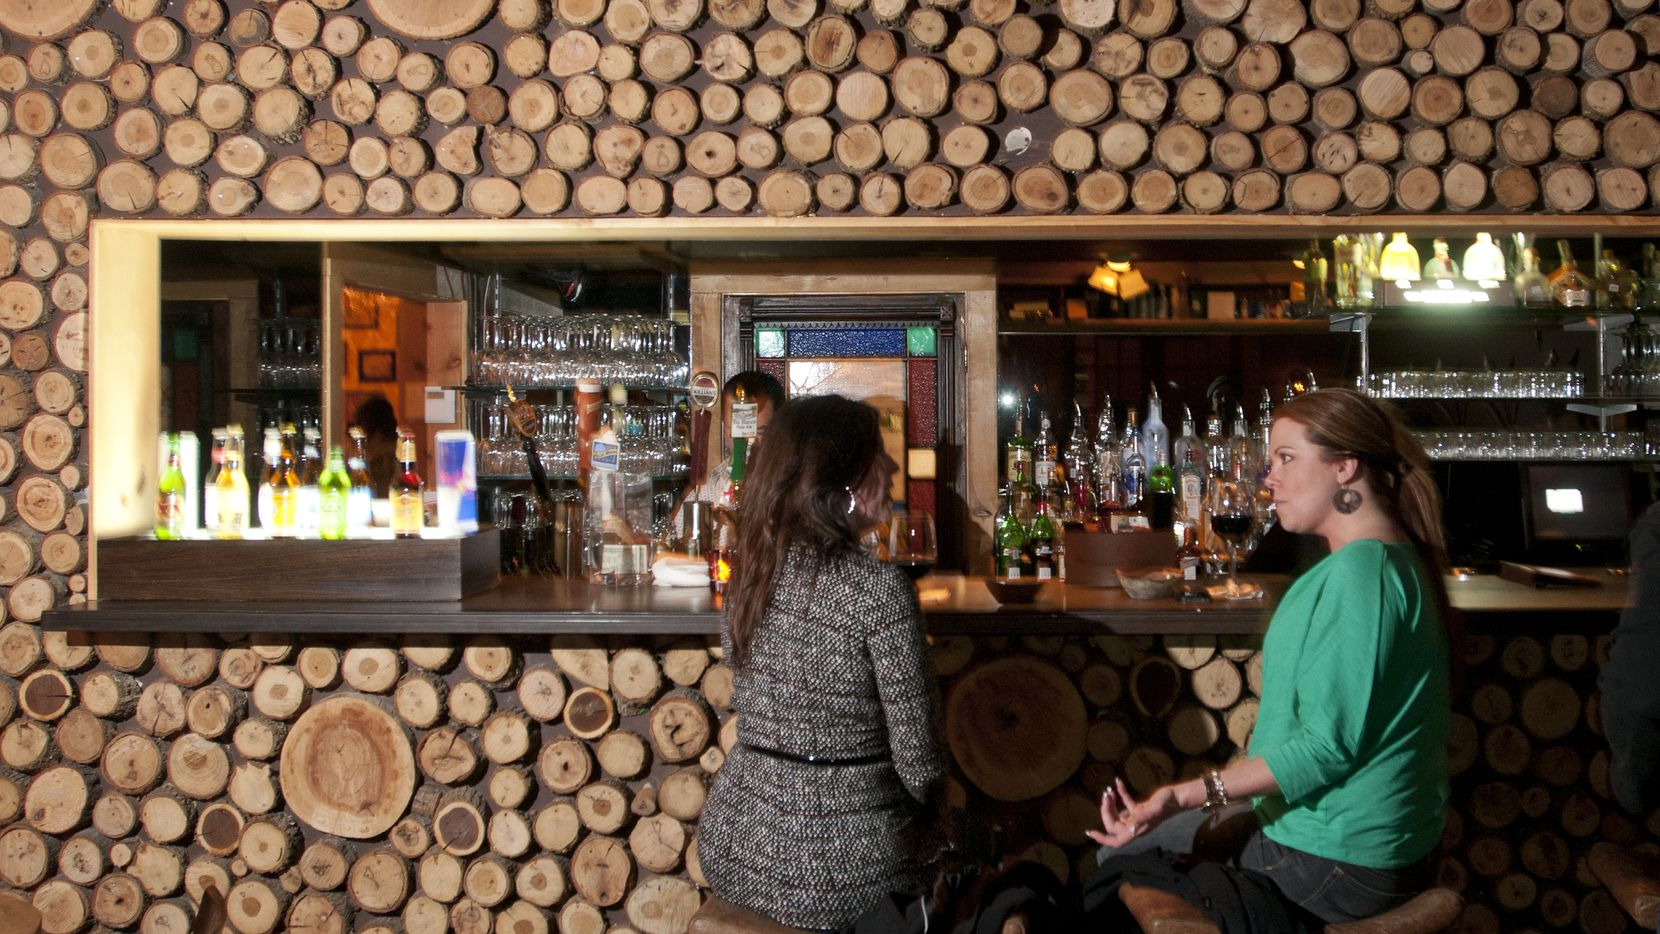 We always liked Tillman's bar, where exposed cuts of wood offer a rustic vibe inside the decidedly Texan restaurant. Tillman's in the Bishop Arts District closes after service on Dec. 31, 2019.